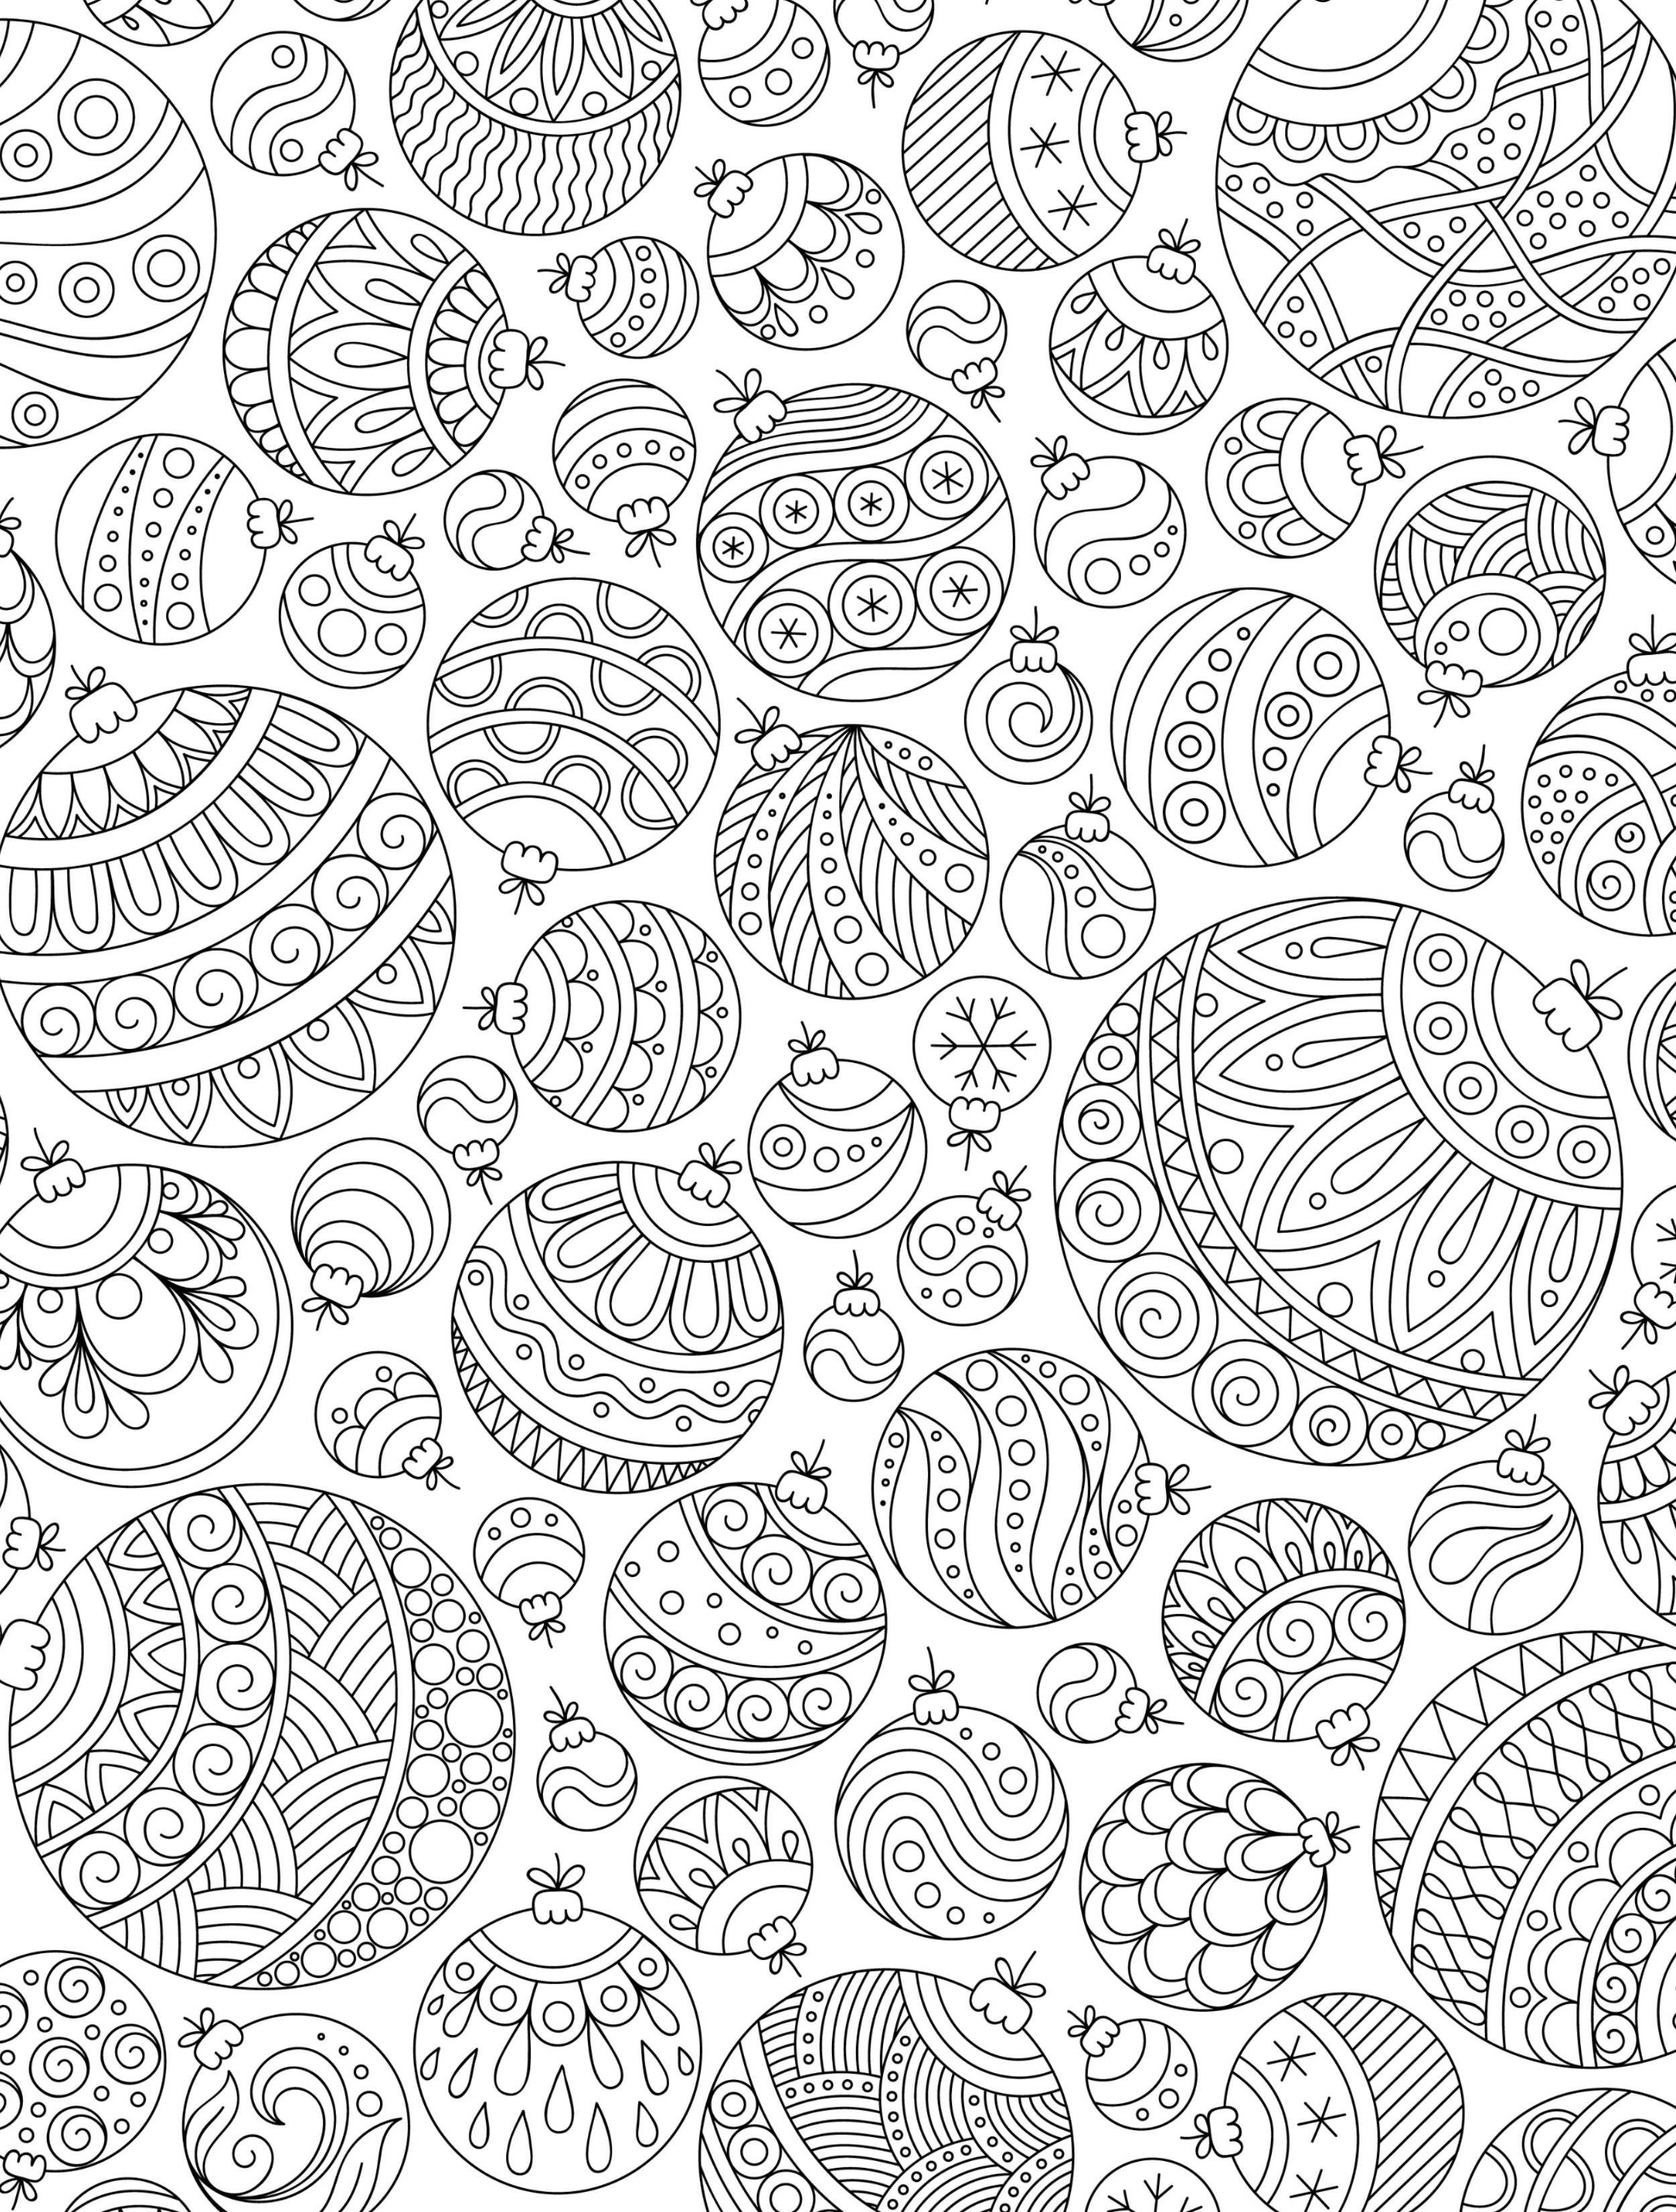 15 CRAZY Busy Coloring Pages for Adults Christmas